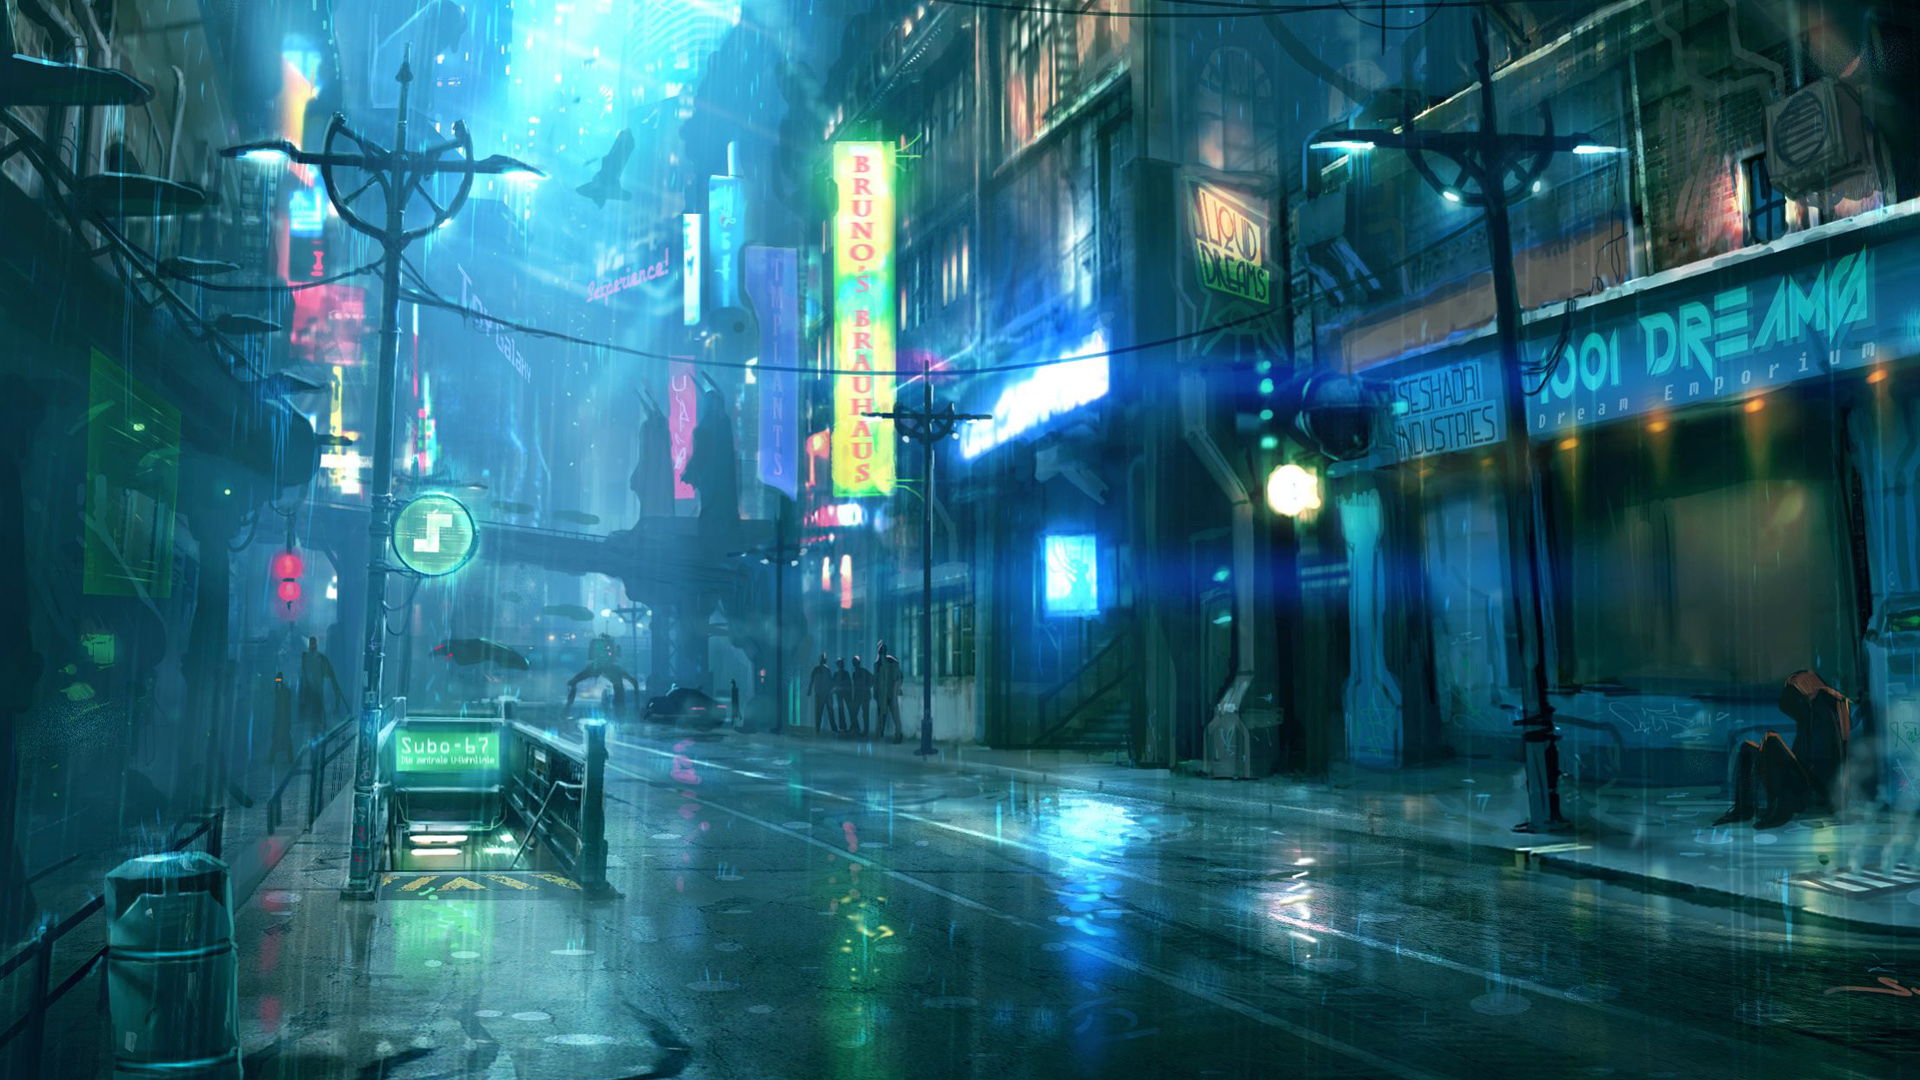 cyberpunk-wallpaper_102105675_292.jpg